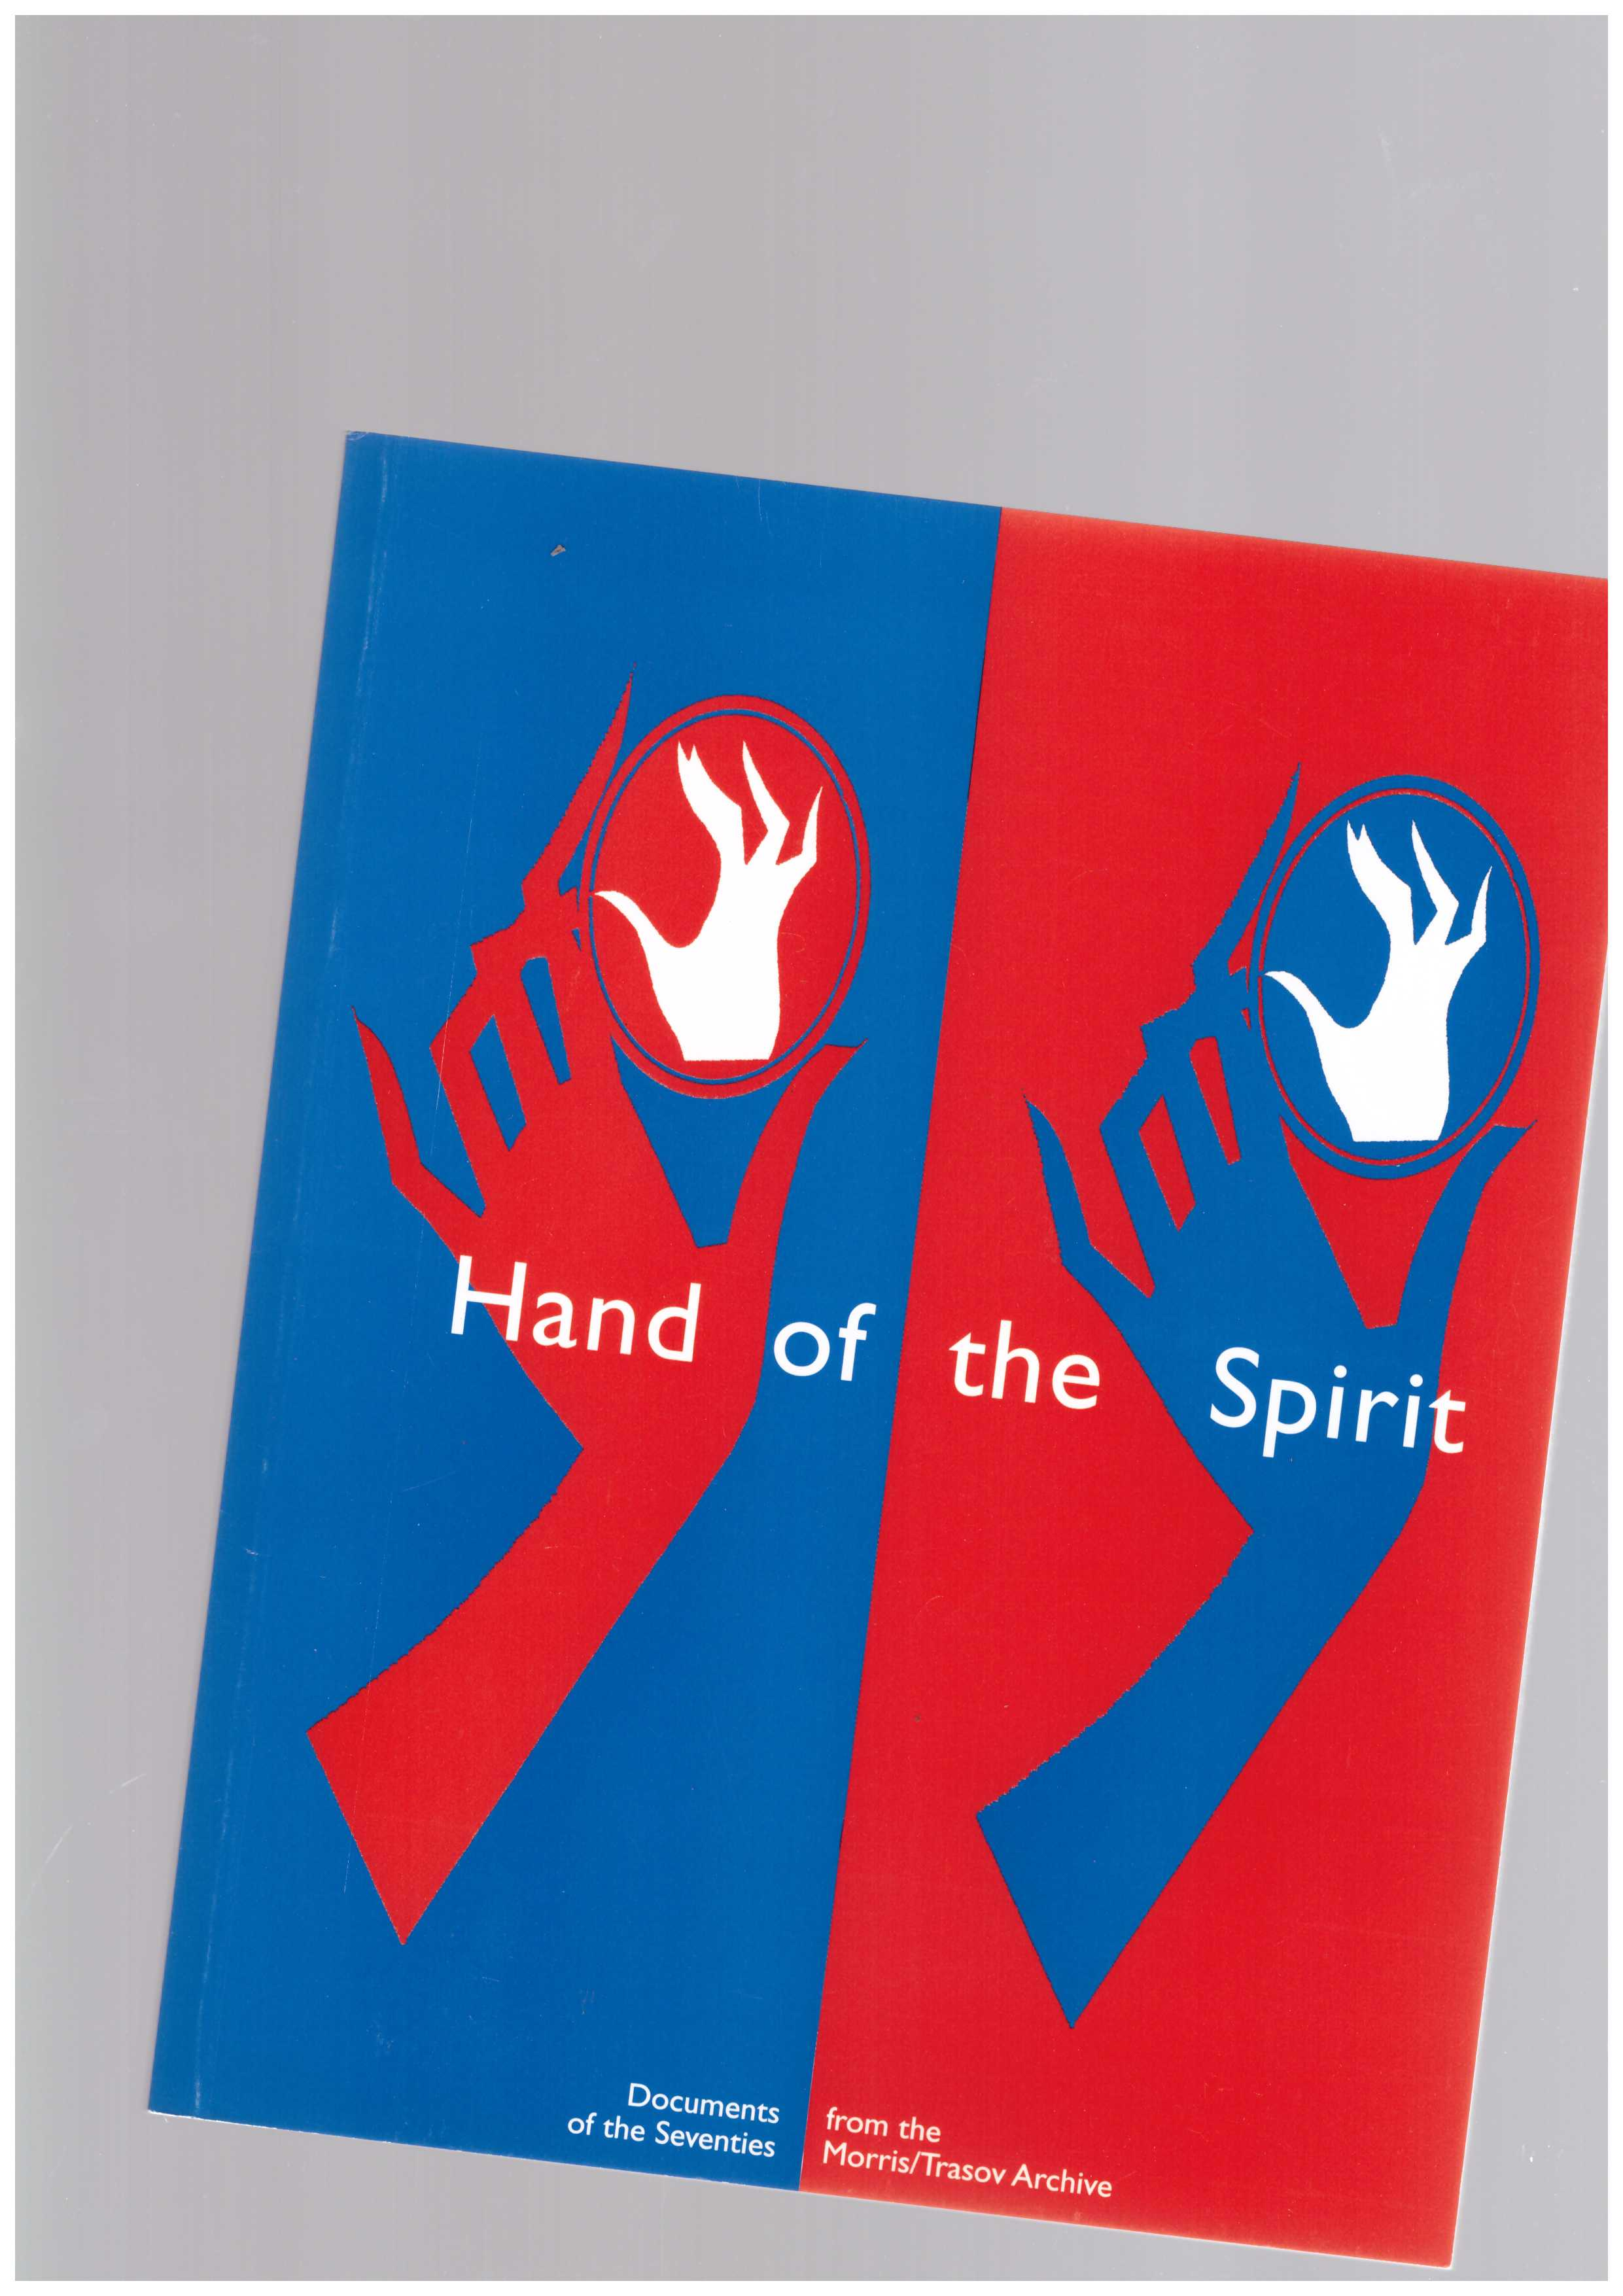 MORRIS, Michael; TRASOV, Vincent - Hand of the Spirit: Documents of the Seventies from the Morris/Trasov Archive